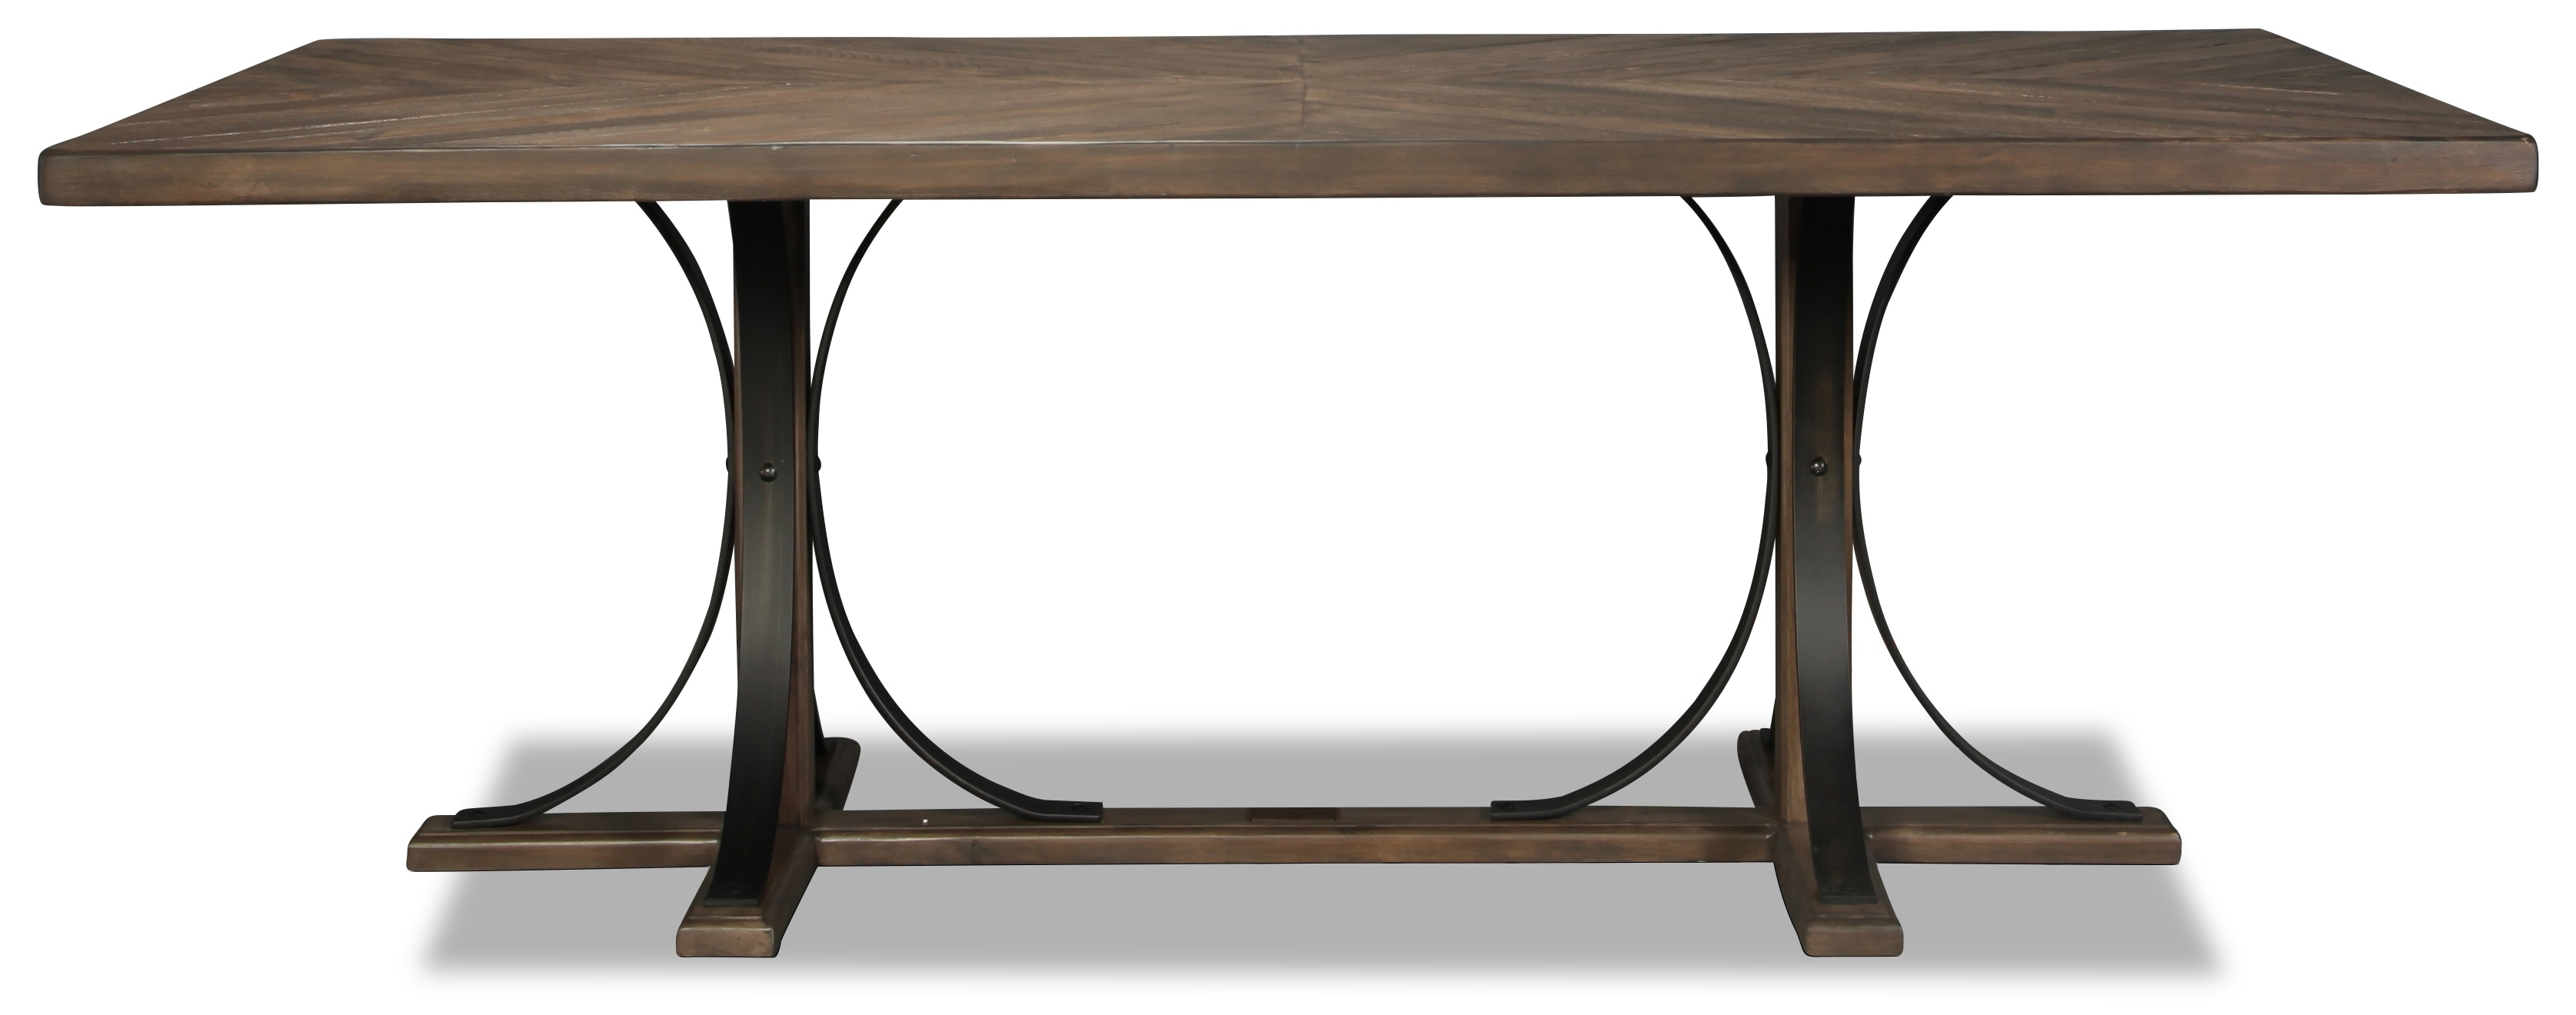 Magnolia Home Traditional Iron Trestle Table (View 7 of 25)